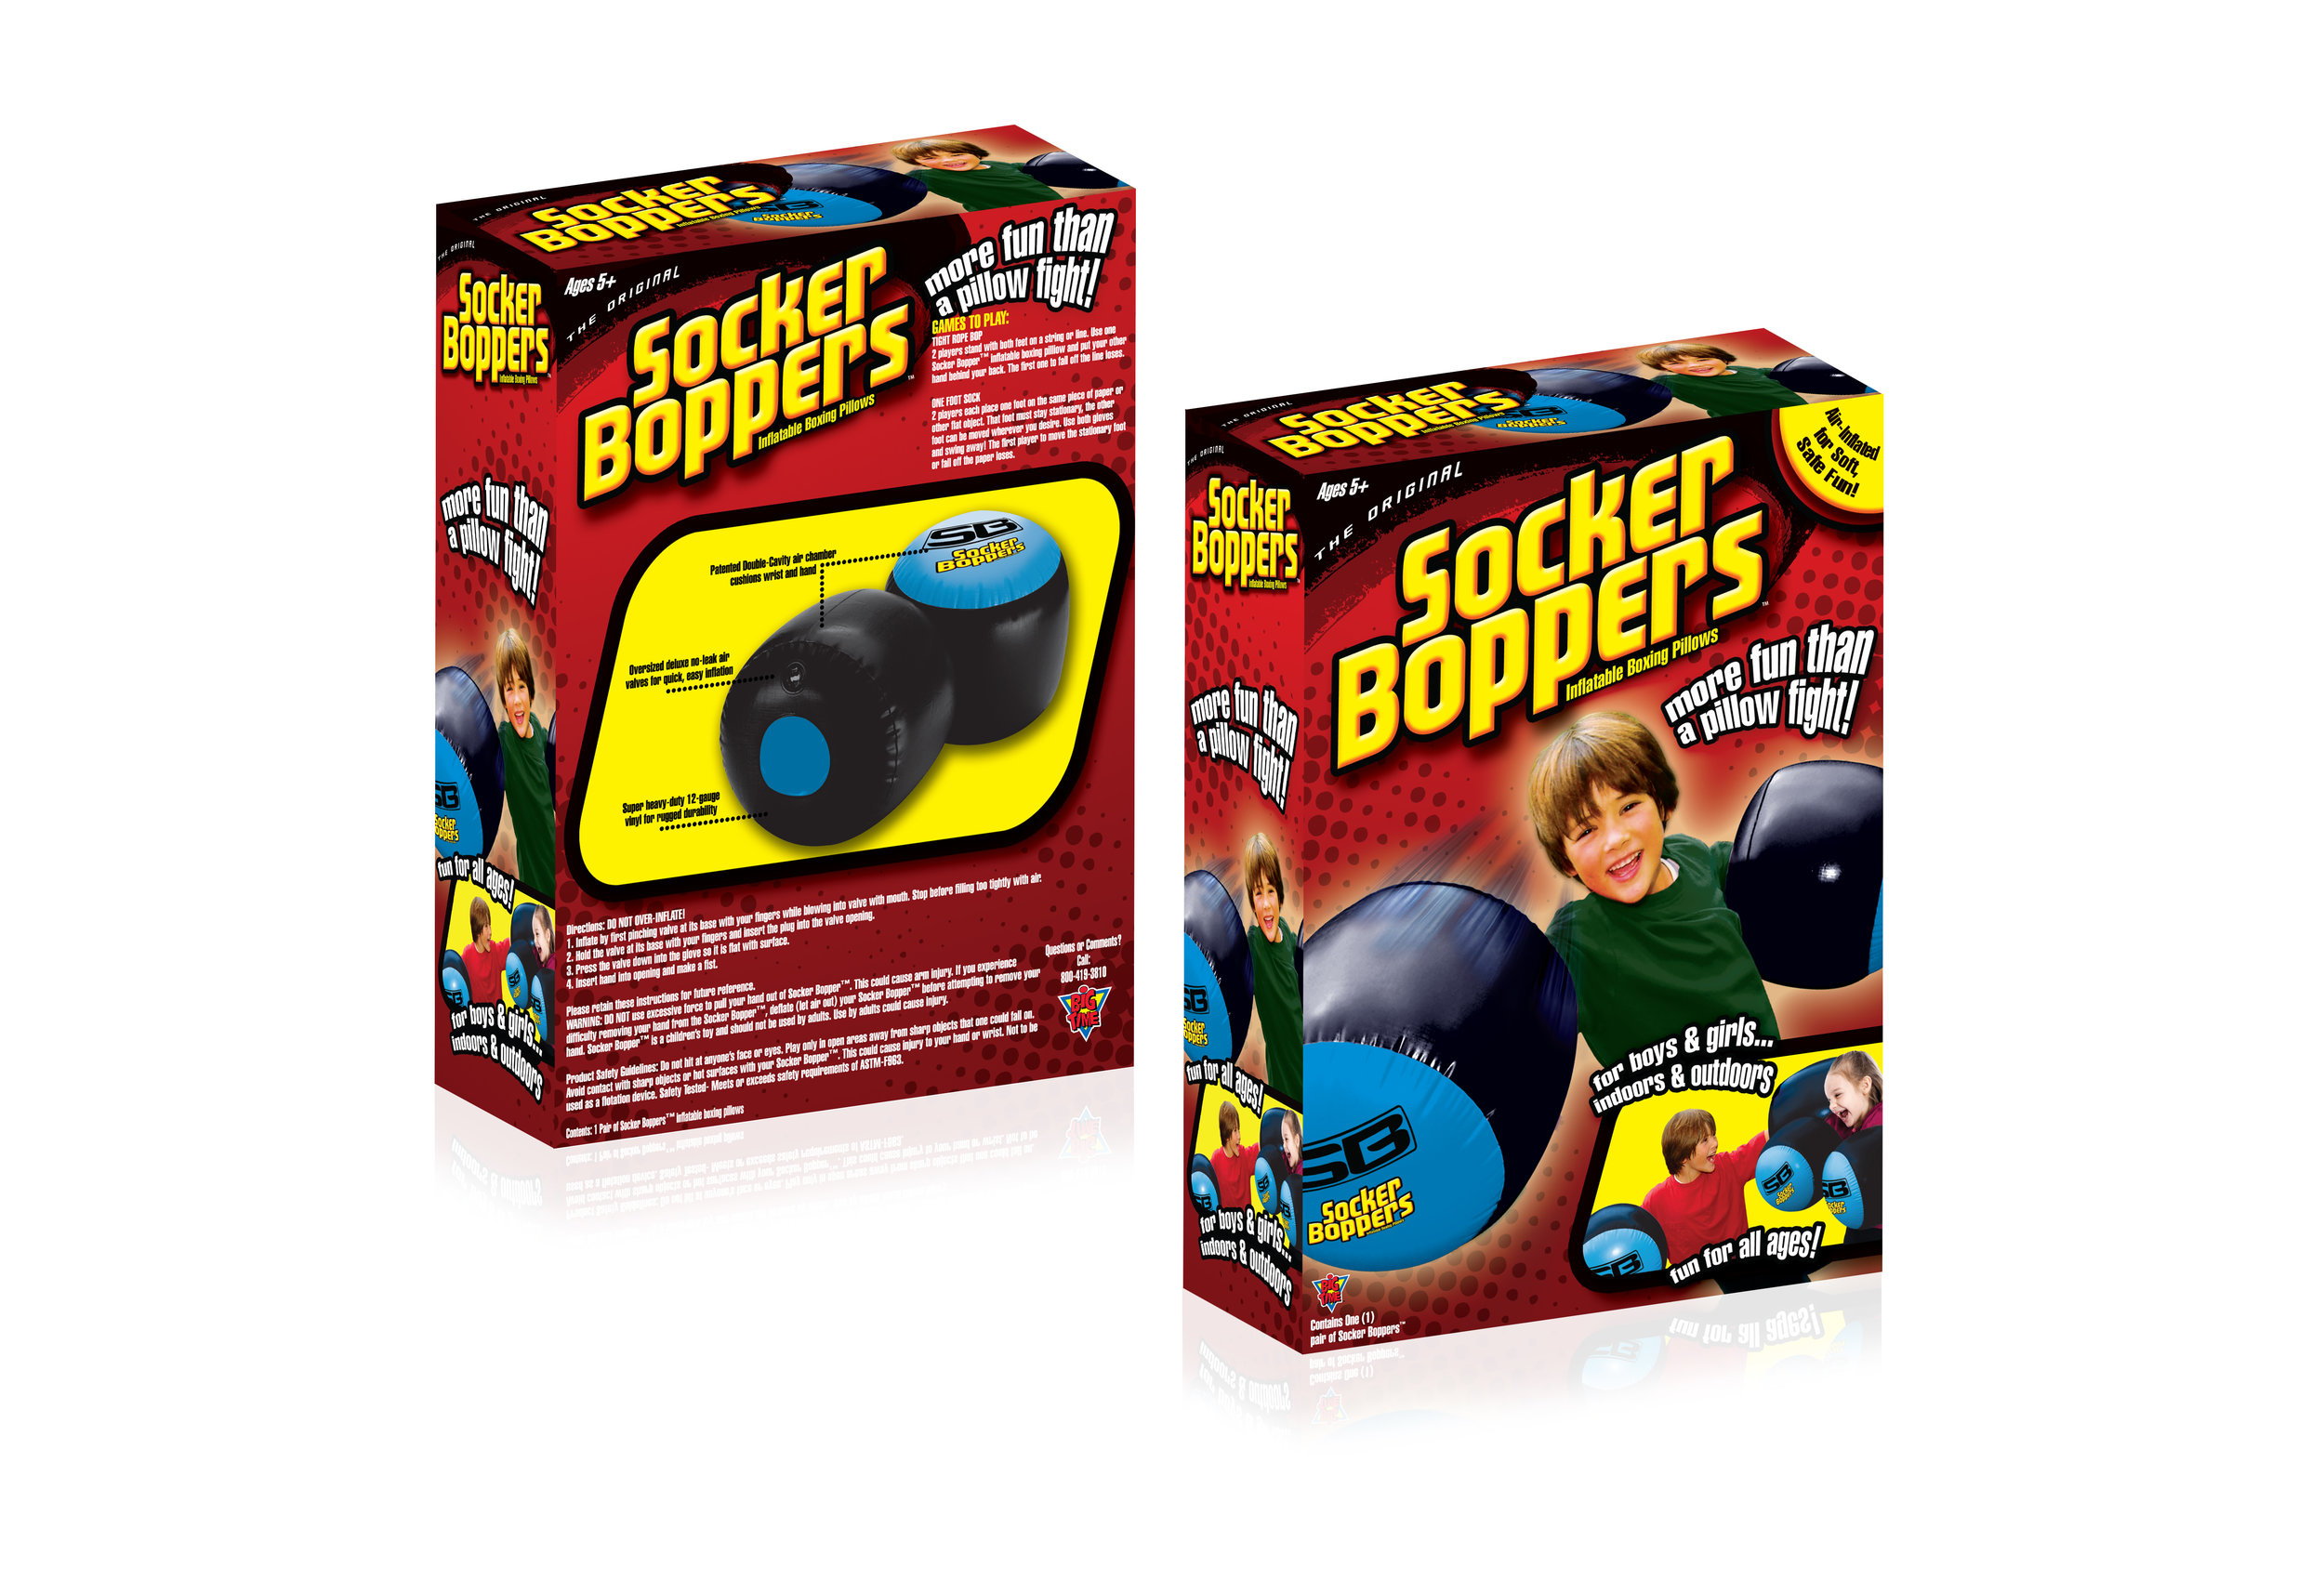 SBoppers package 2010 051910.jpg